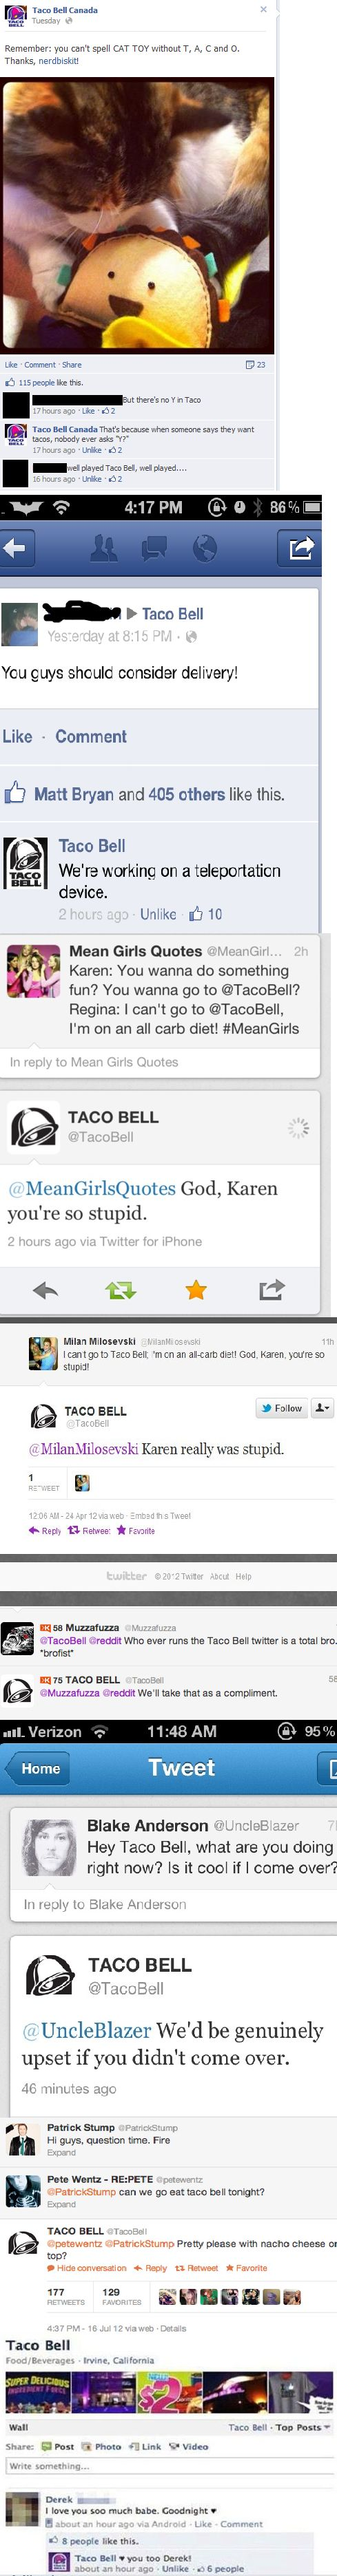 Taco Bell is a boss (and Patrick Stump haha) because I need another reason to be obsessed with Taco Bell lol